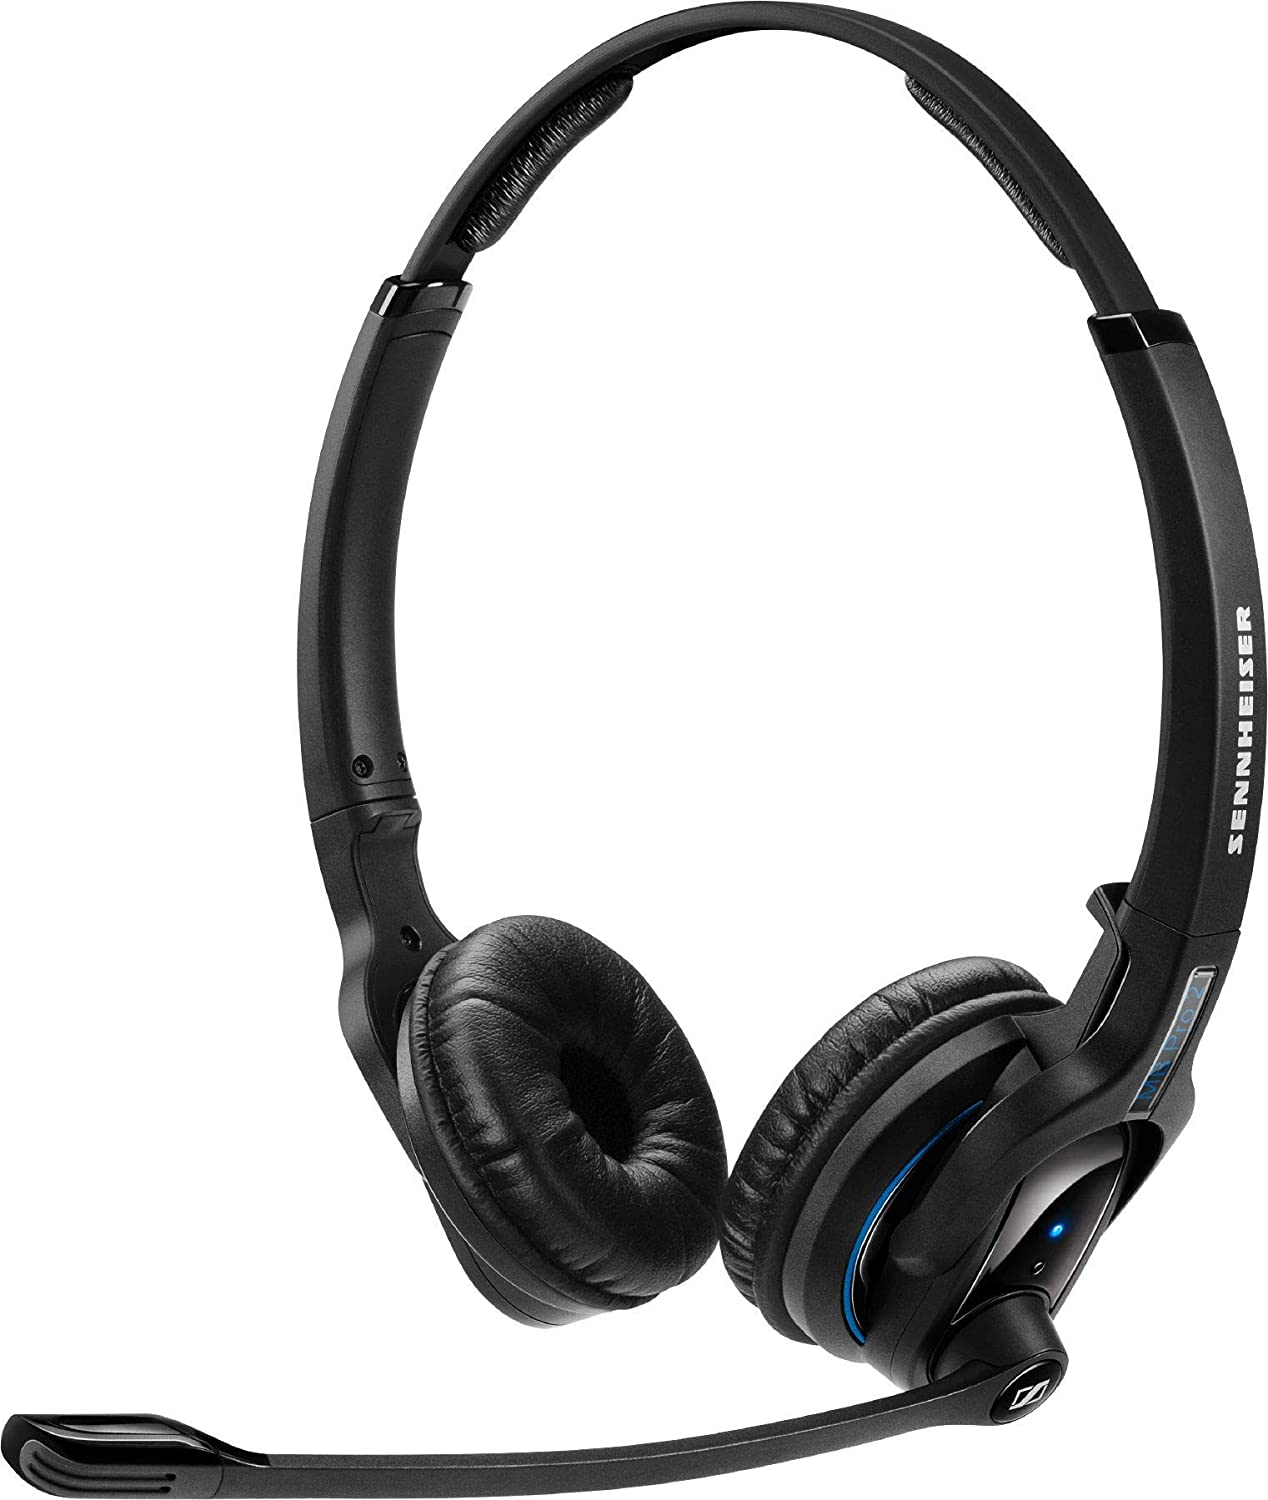 Sennheiser MB Pro 2 UC ML (506046) - Dual-Sided, Dual-Connectivity, Wireless Bluetooth Headset | For Desk/Mobile Phone & Softphone/PC Connection| w/ HD Sound & Major UC Platform Compatibility (Black)